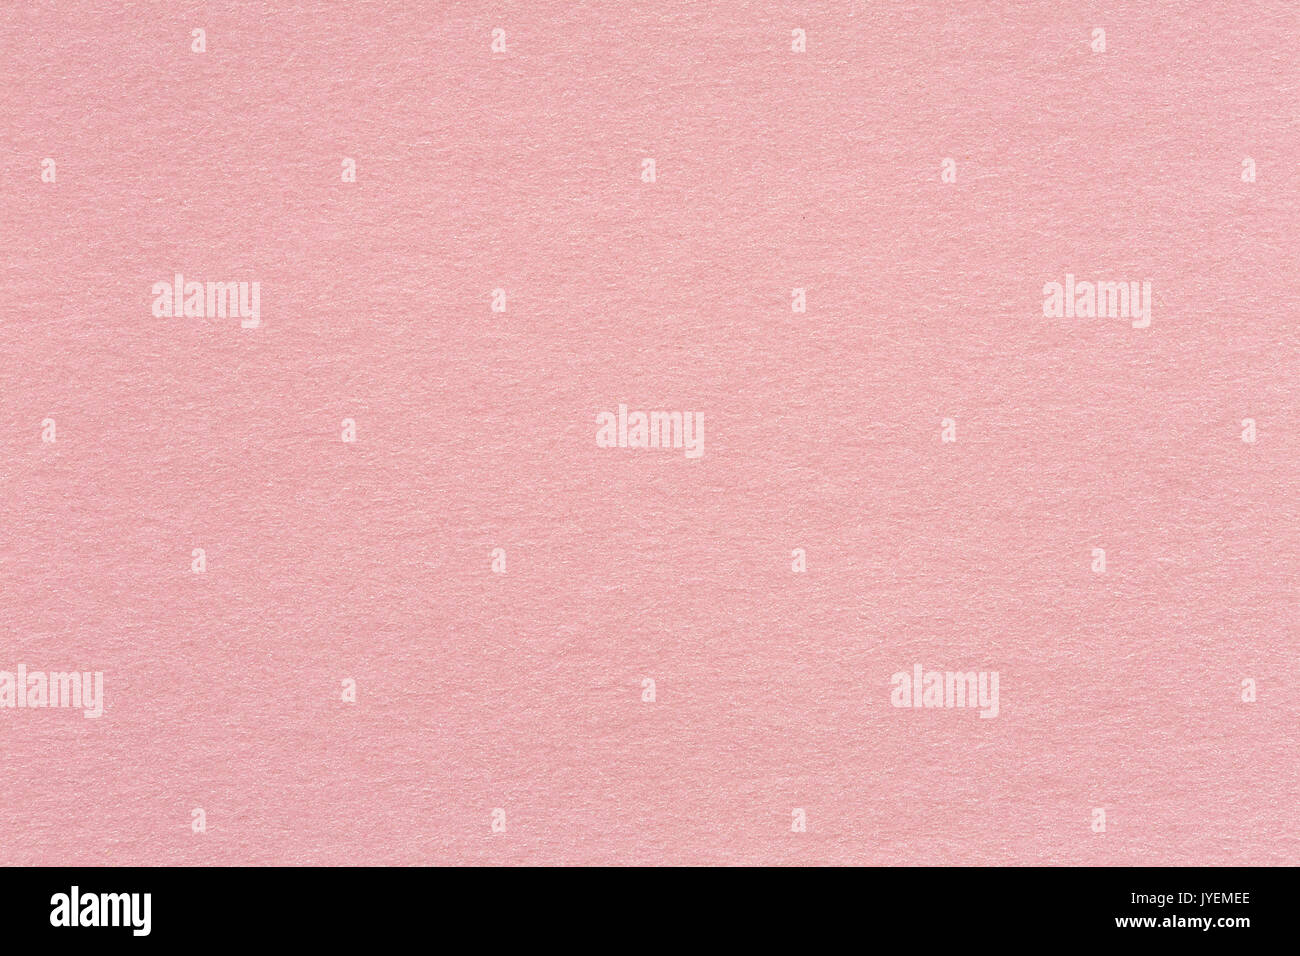 Recycled Craft Paper Textured Background In Light Pink Old Rose